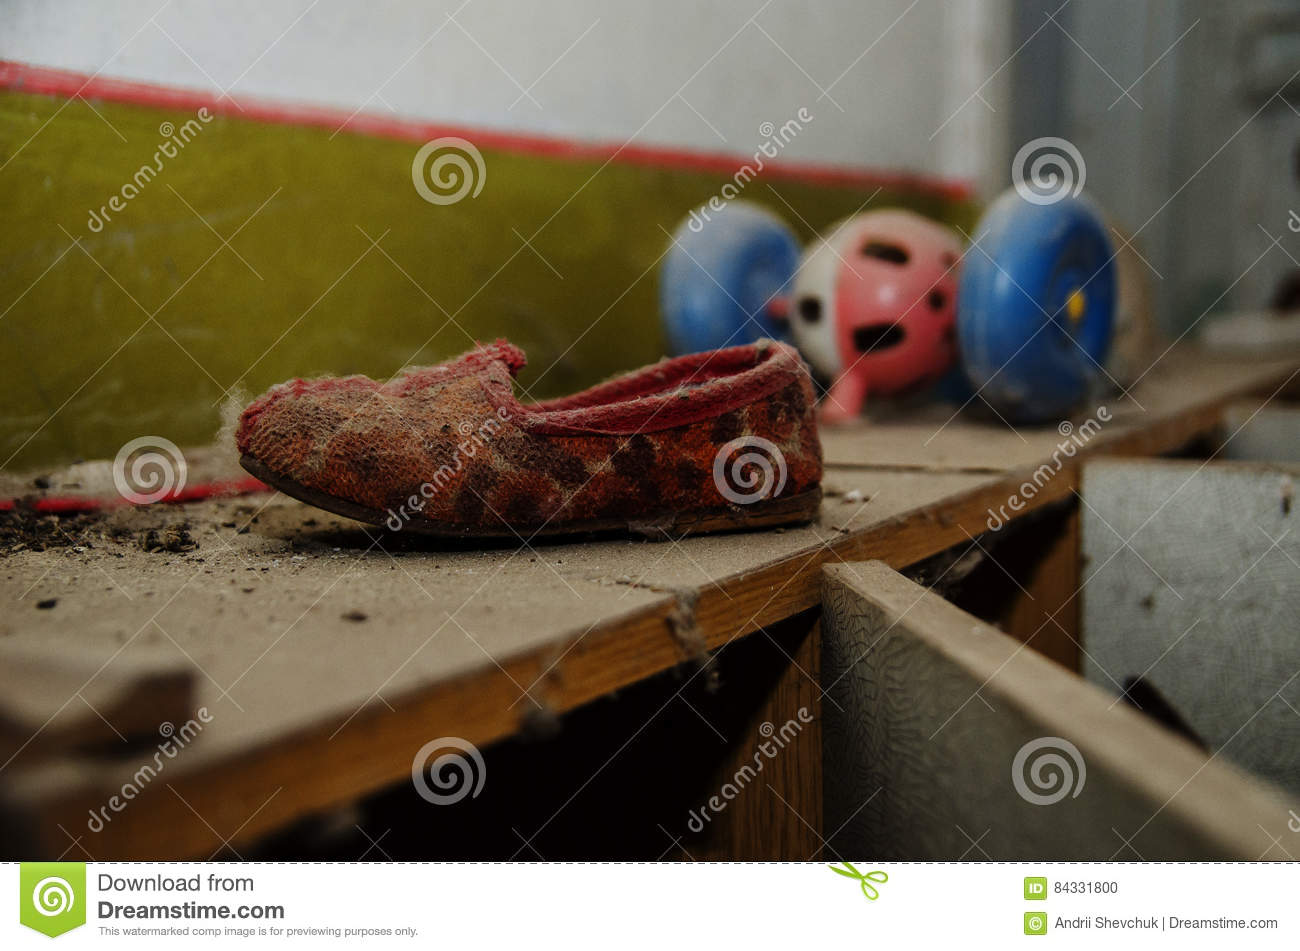 Soviet shoes children slippers in dust at Chernobyl nuclear disaster area.